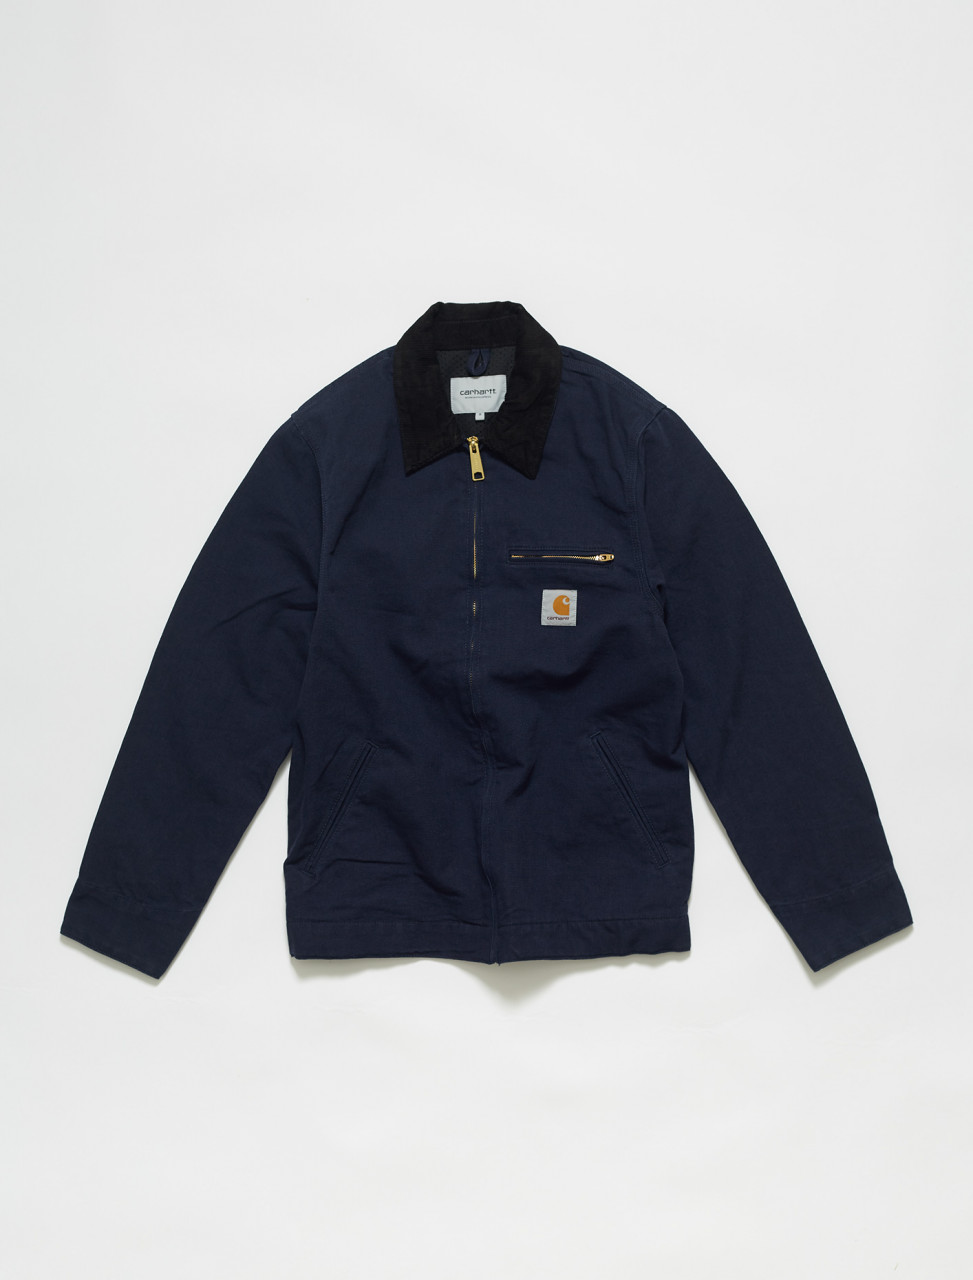 I026467-1C CARHARTT DETROIT JACKET IN DARK NAVY